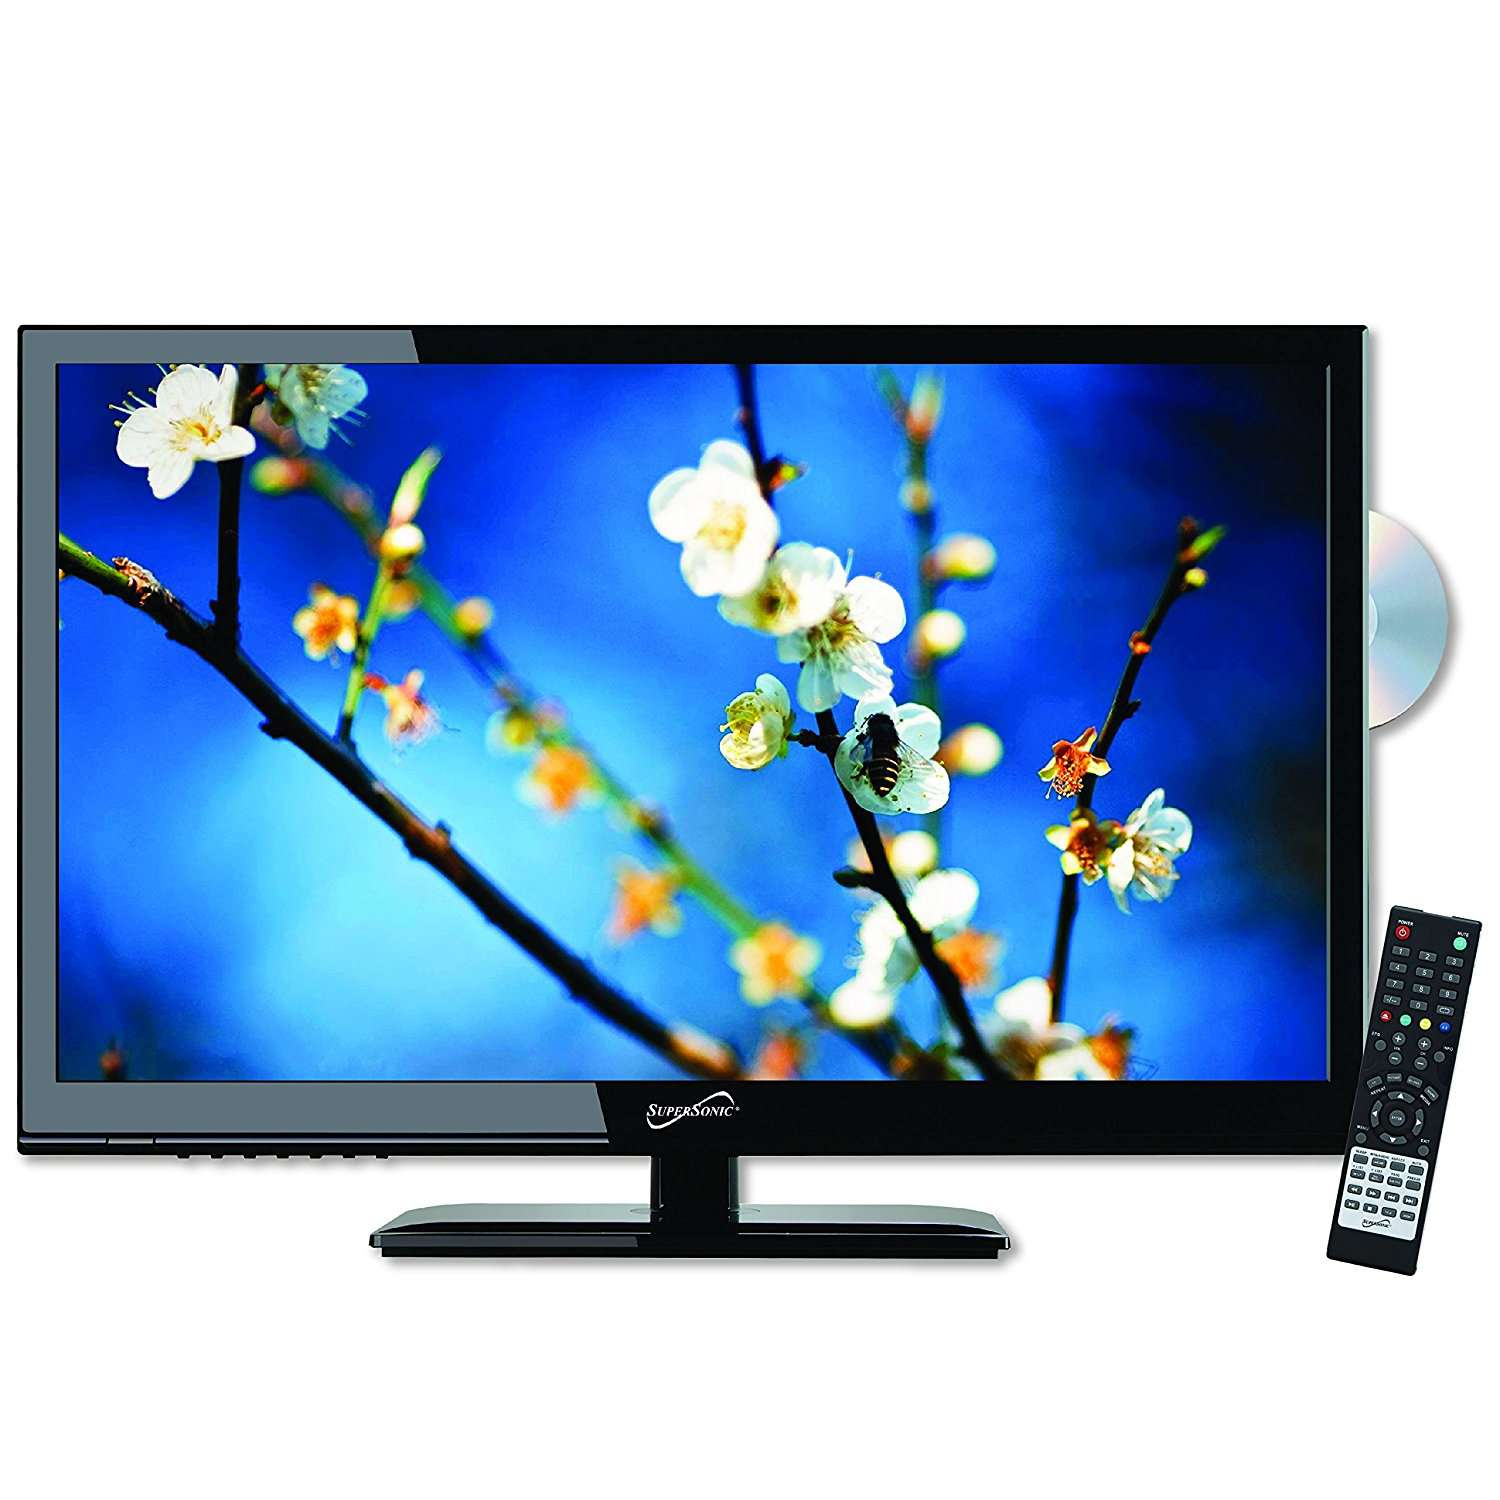 """SuperSonic 24"""" 1080 LED Widescreen HDTV"""